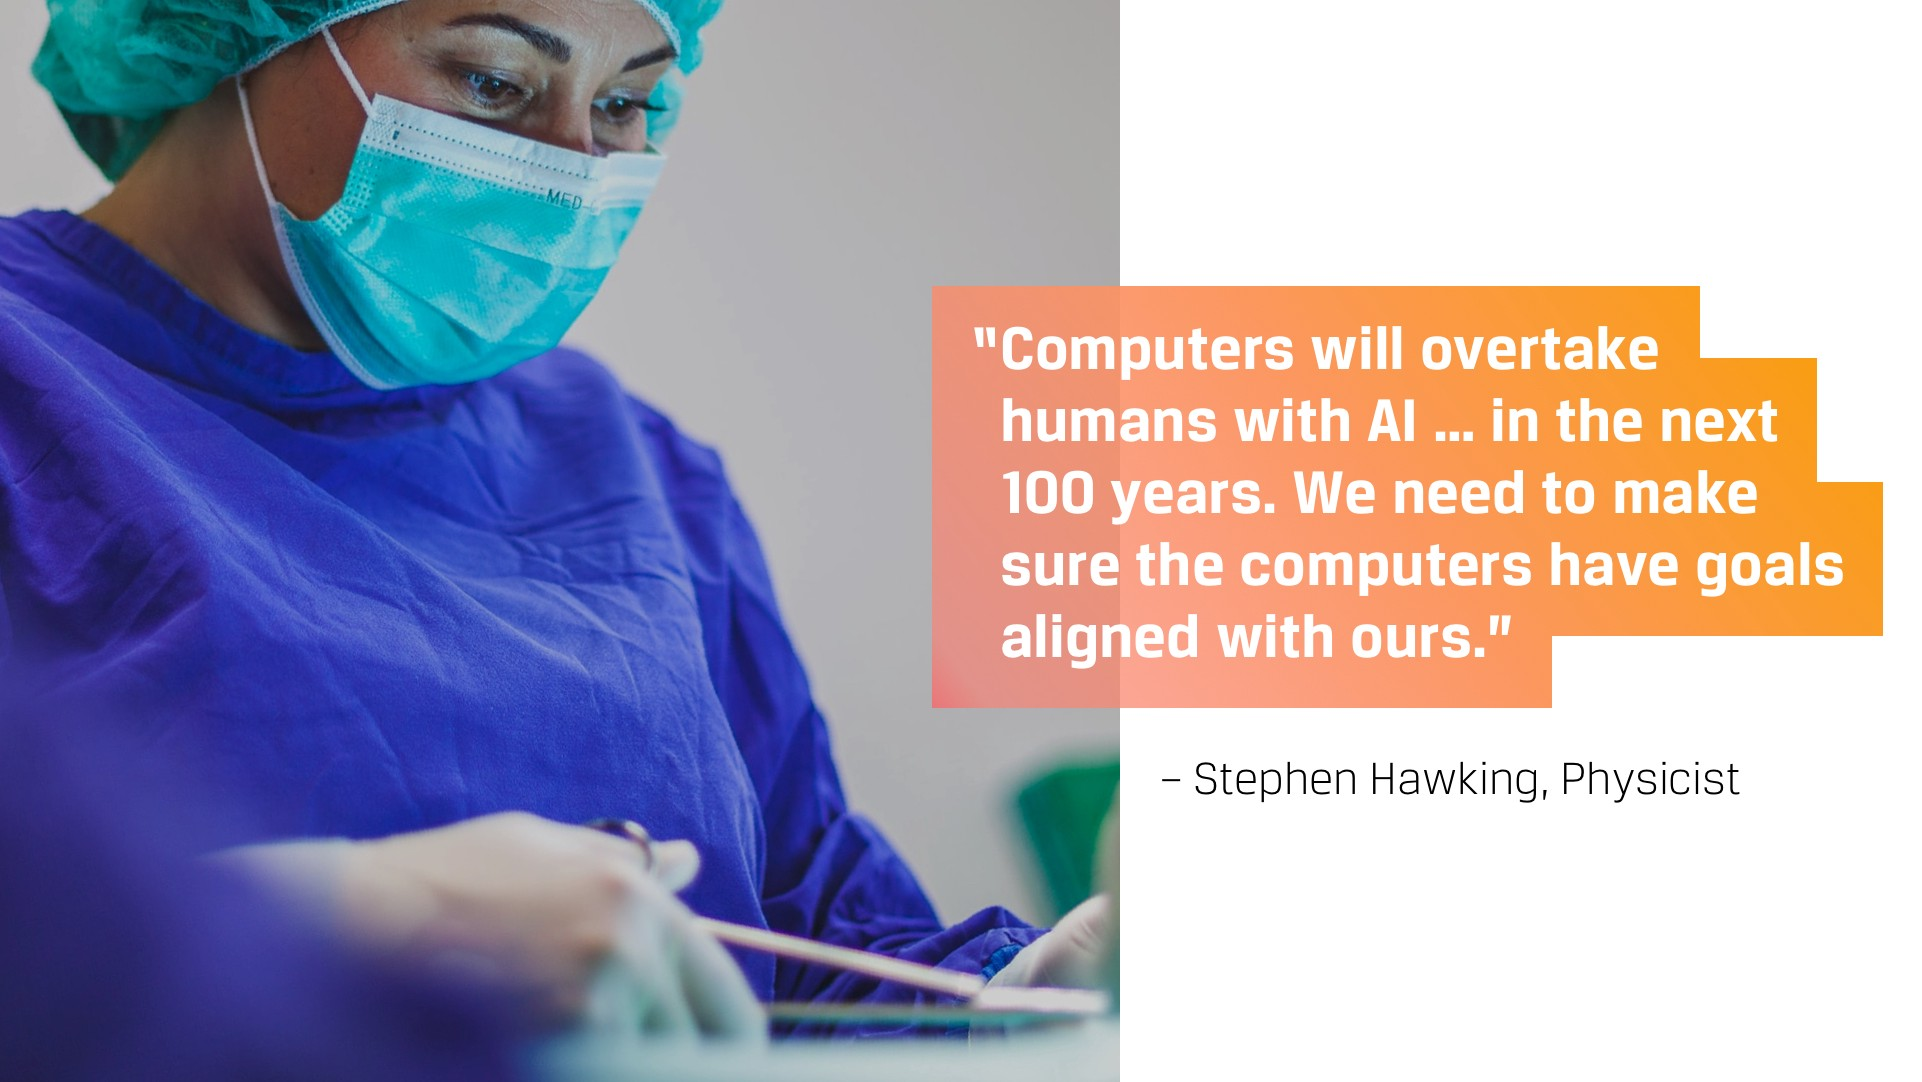 Computers will overtake humans with AI … We need to make sure the computers have goals aligned with ours. — Stephen Hawking